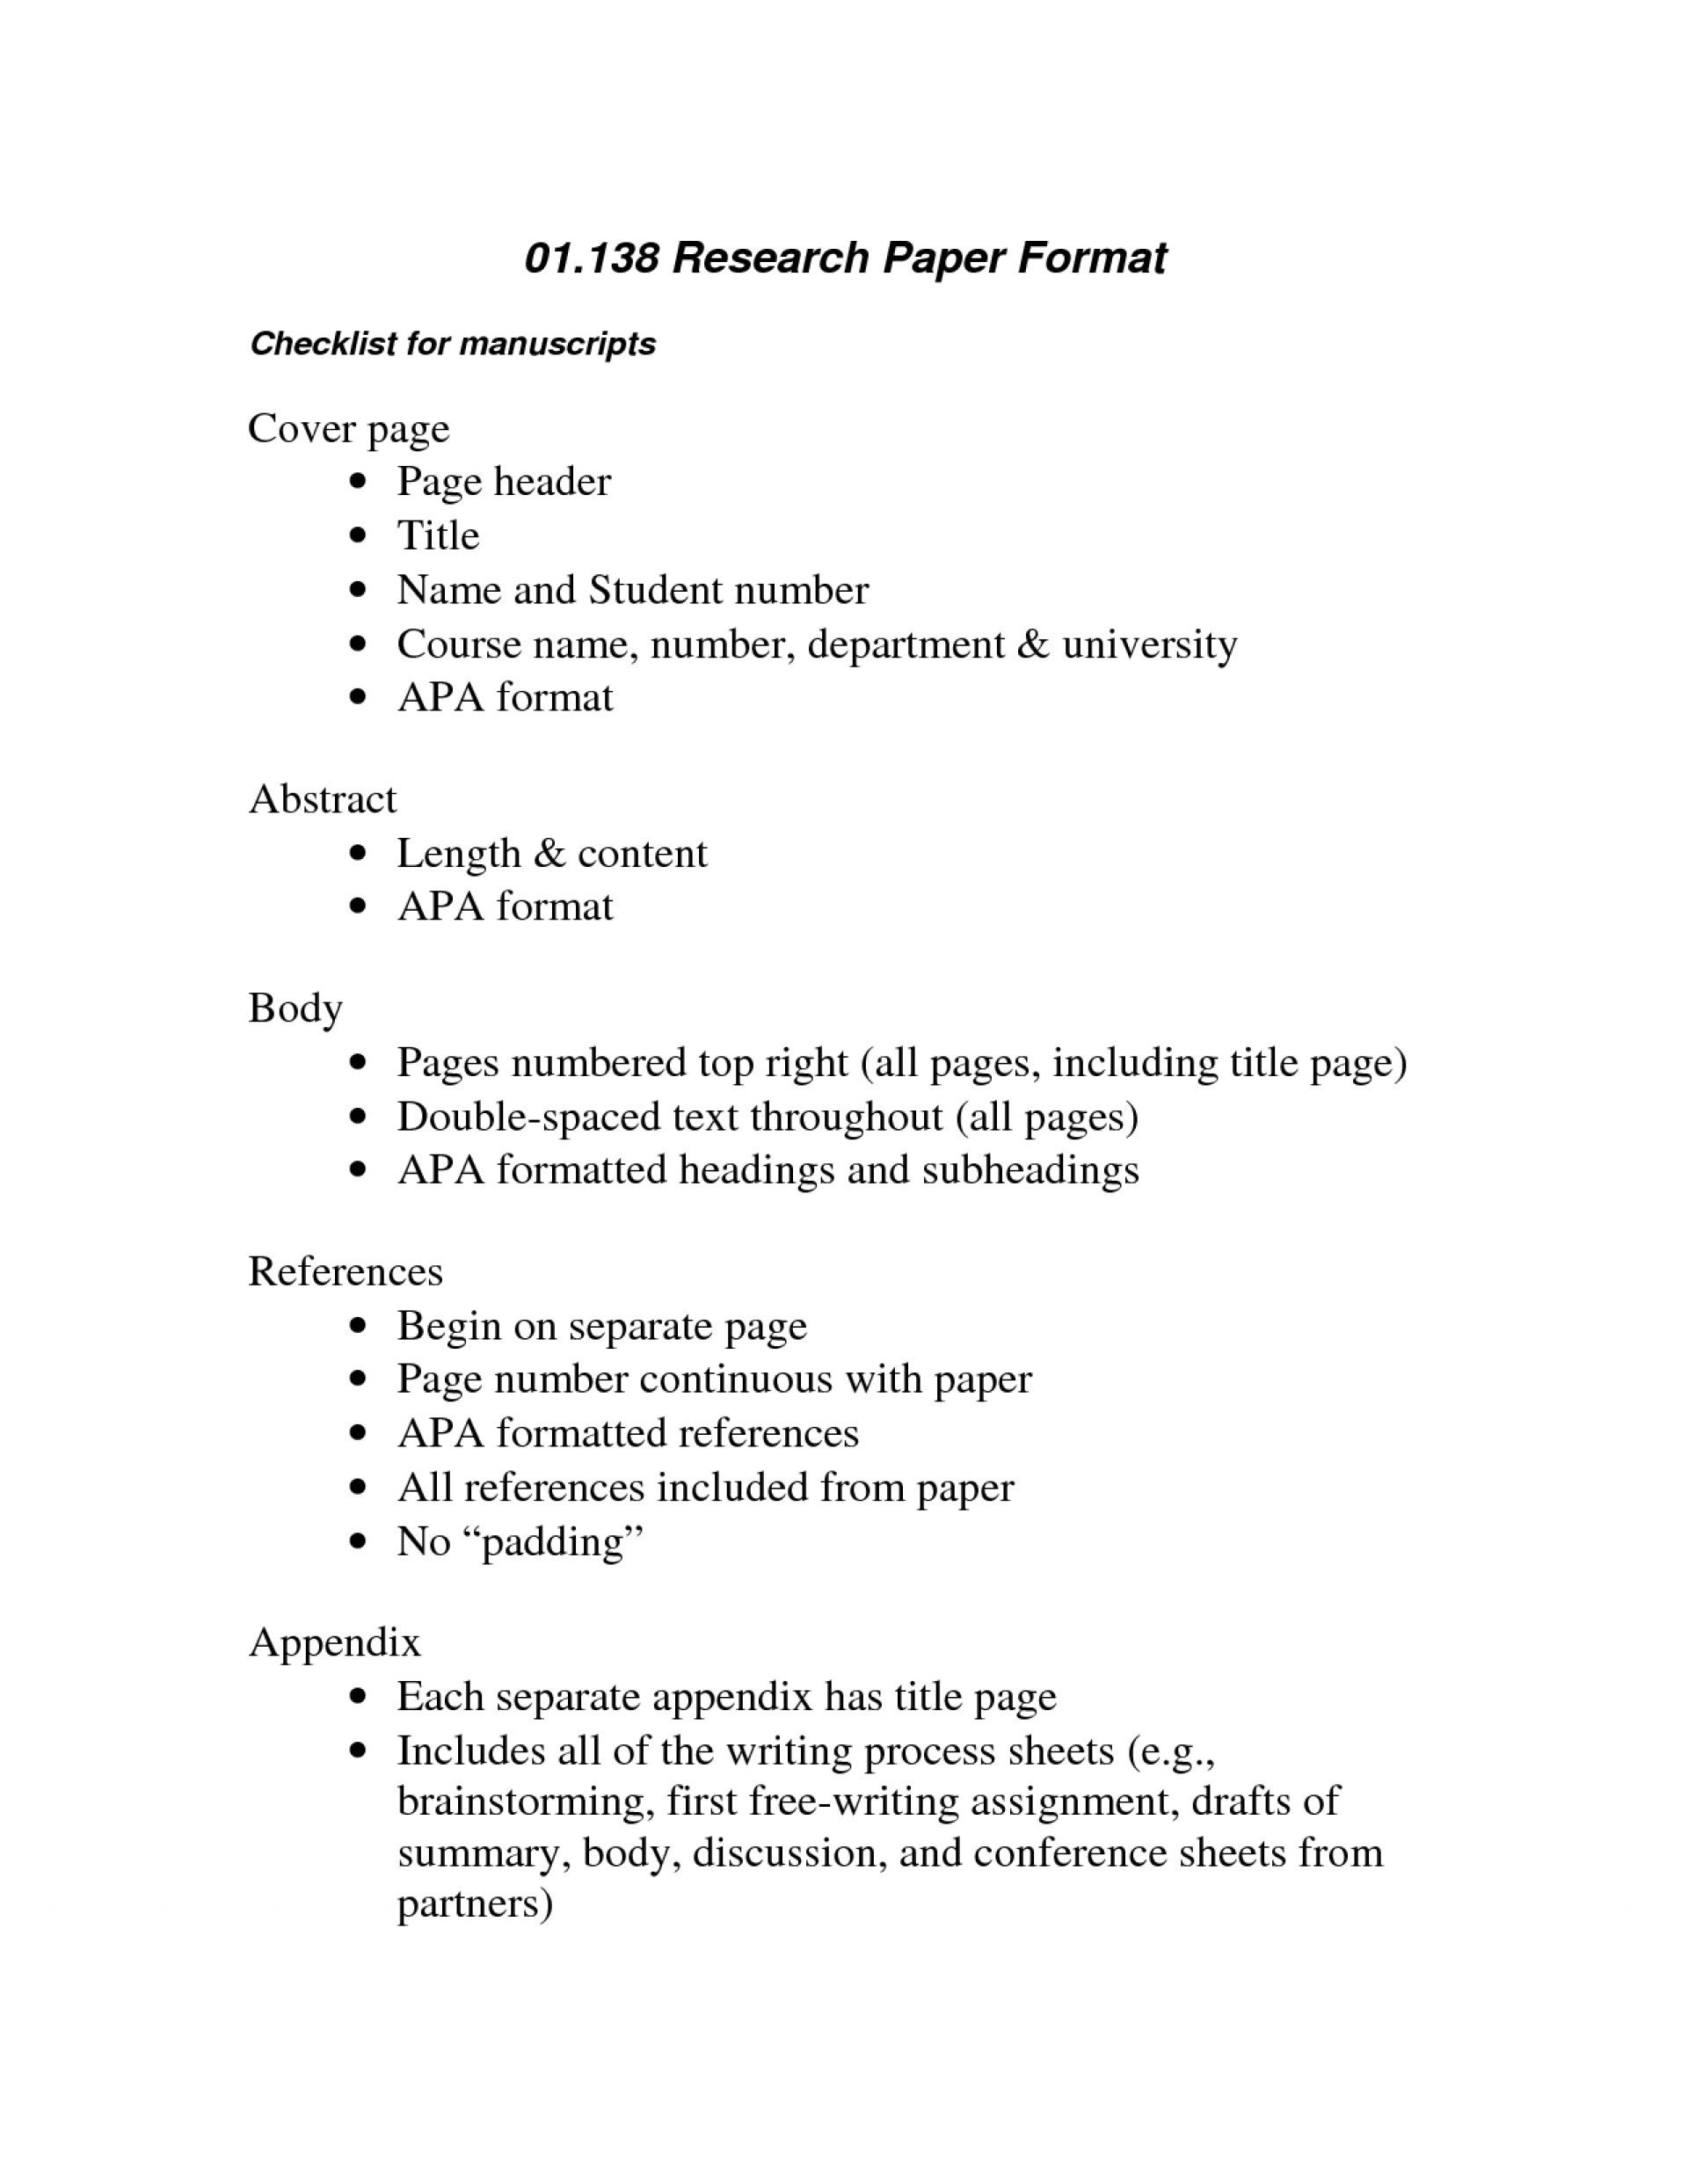 002 Apa Research Paper Format Outstanding Headings Sample Abstract Example 1920